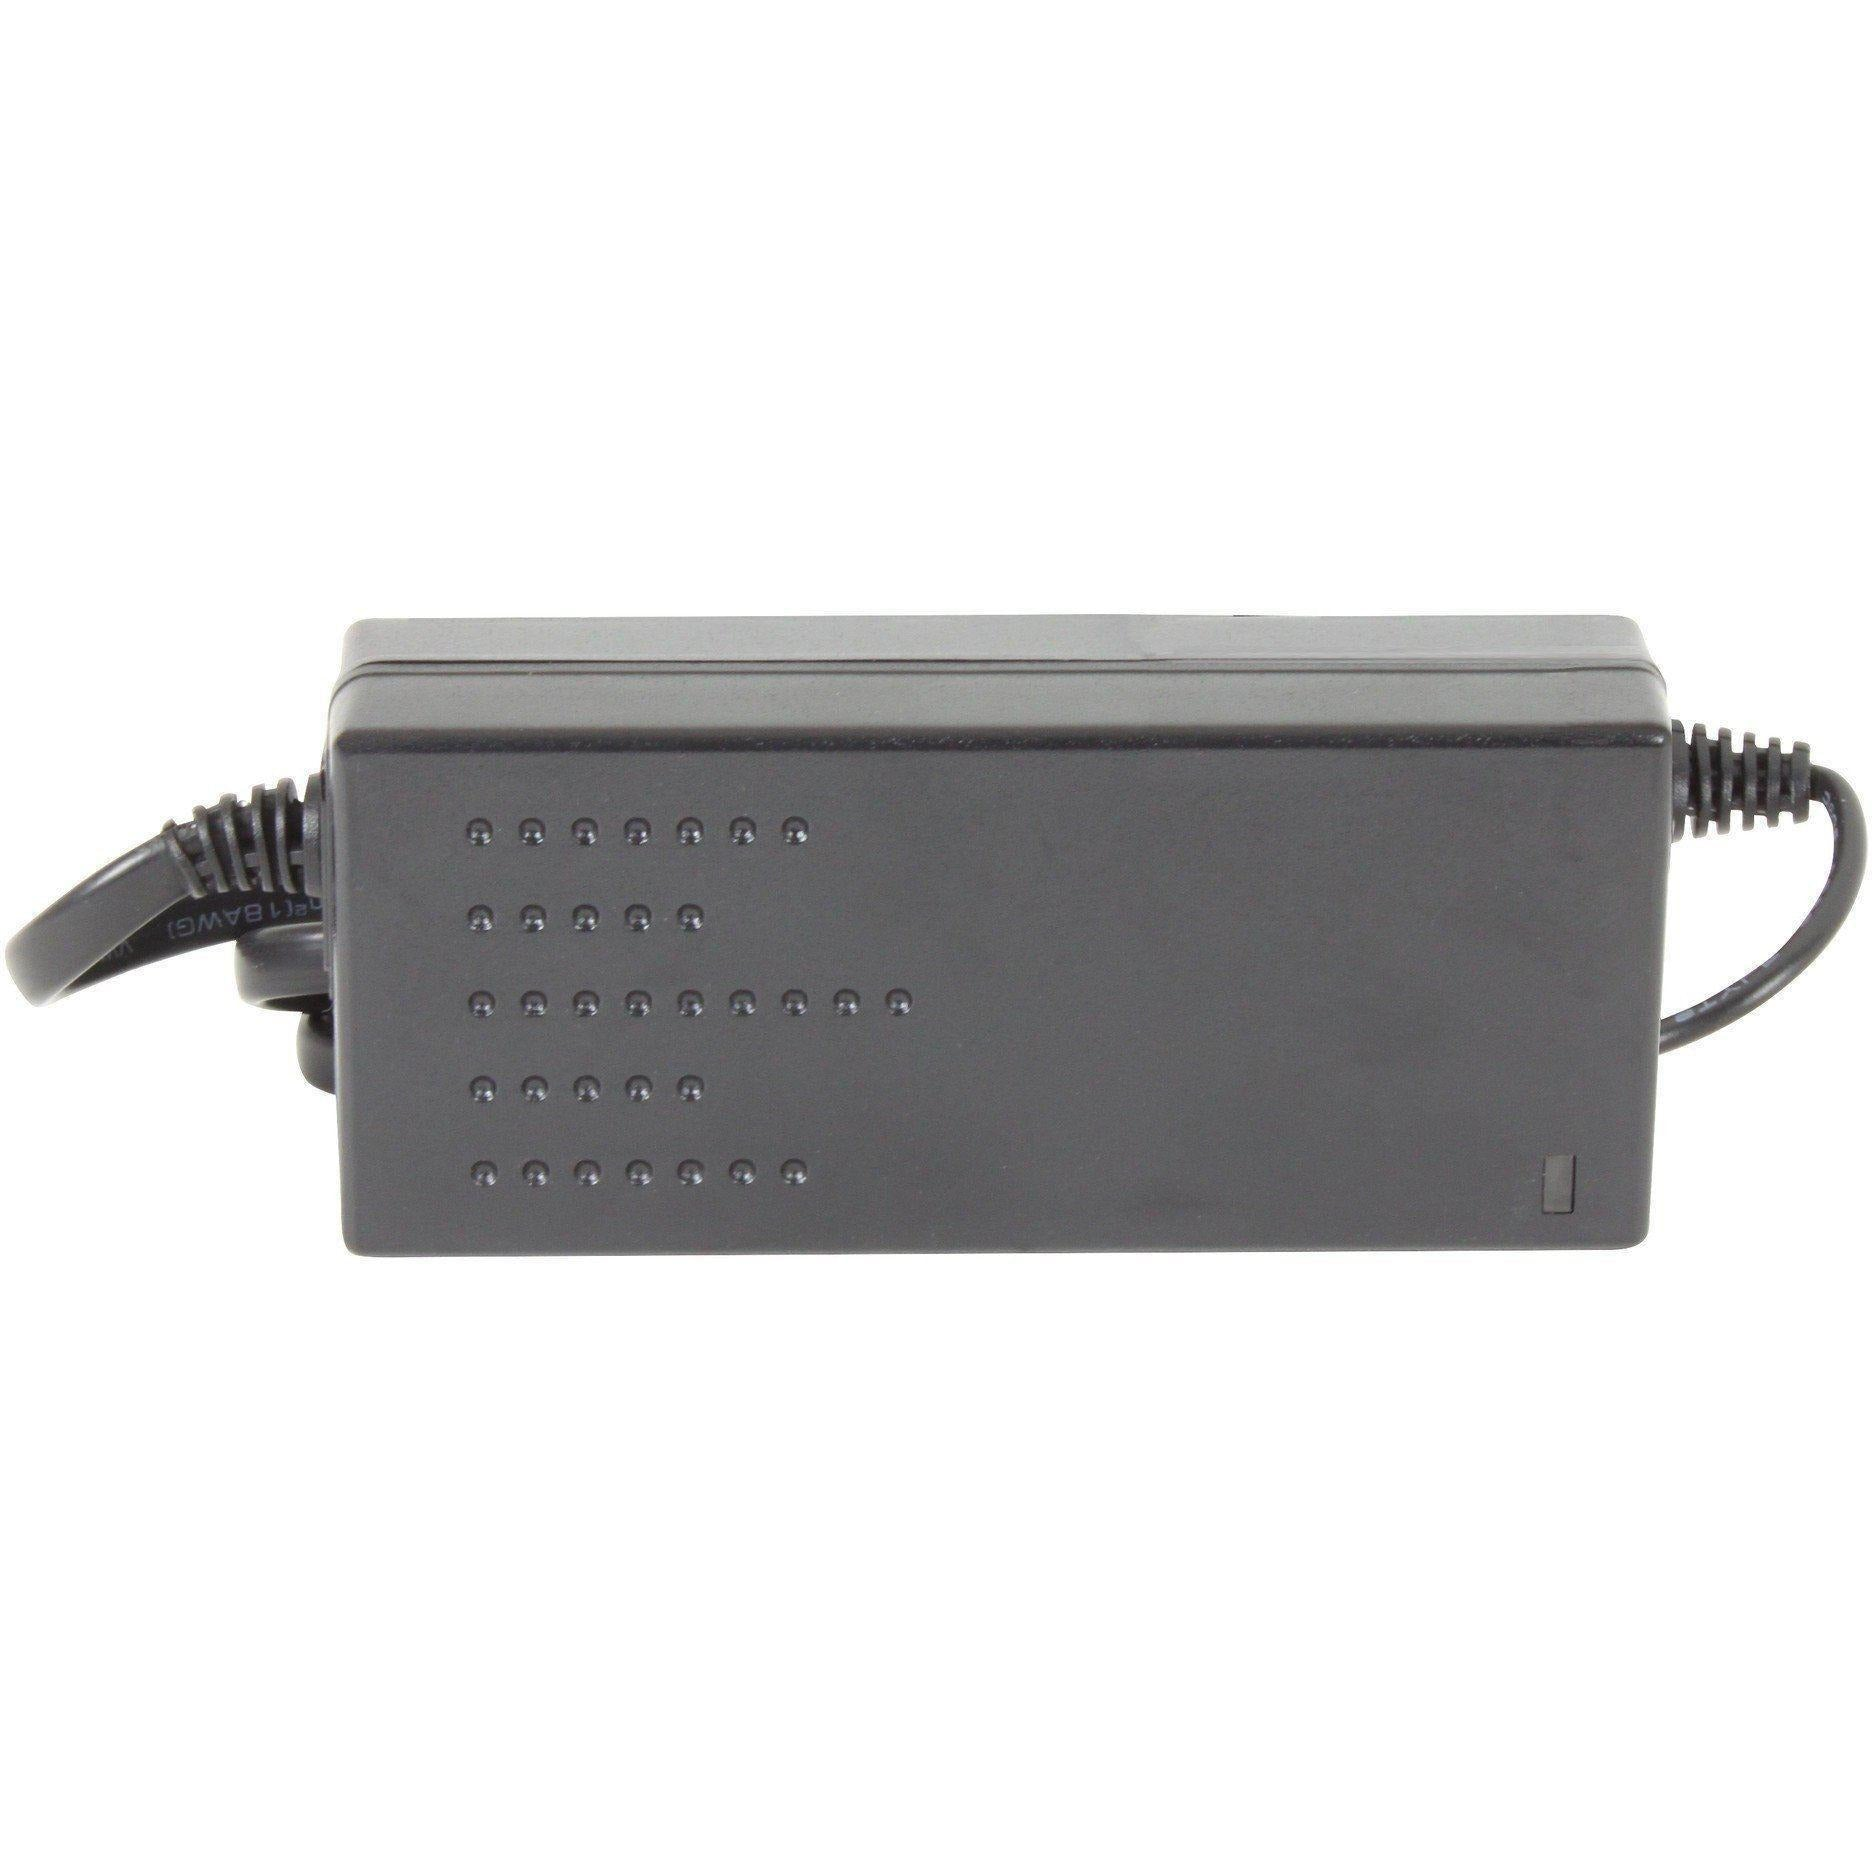 Titan Controls® Ares® Series, Replacement CO2 Generator AC Power Supply